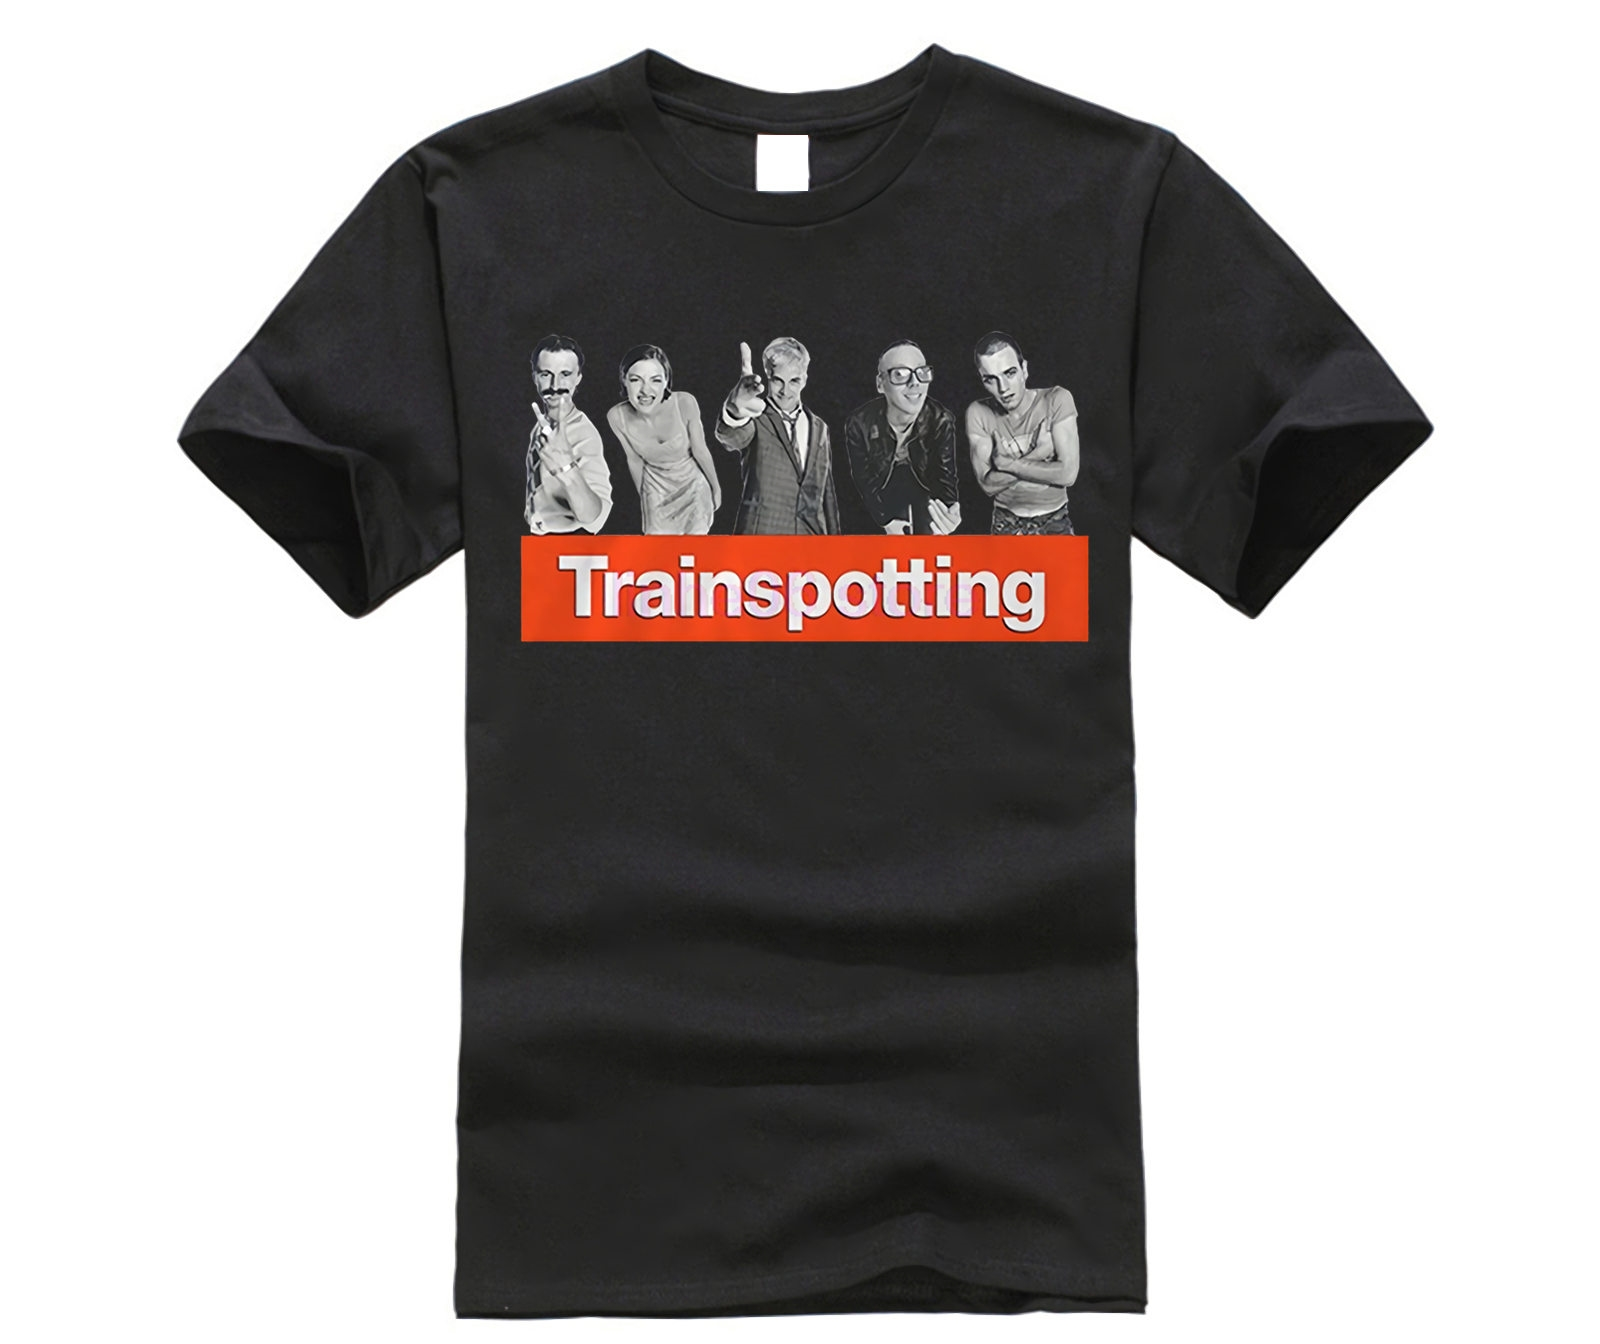 Fashion T Shirts Trainspotting Vintage Movie T Shirts Family Brand Short Sleeve Boyfriend's T Shirts